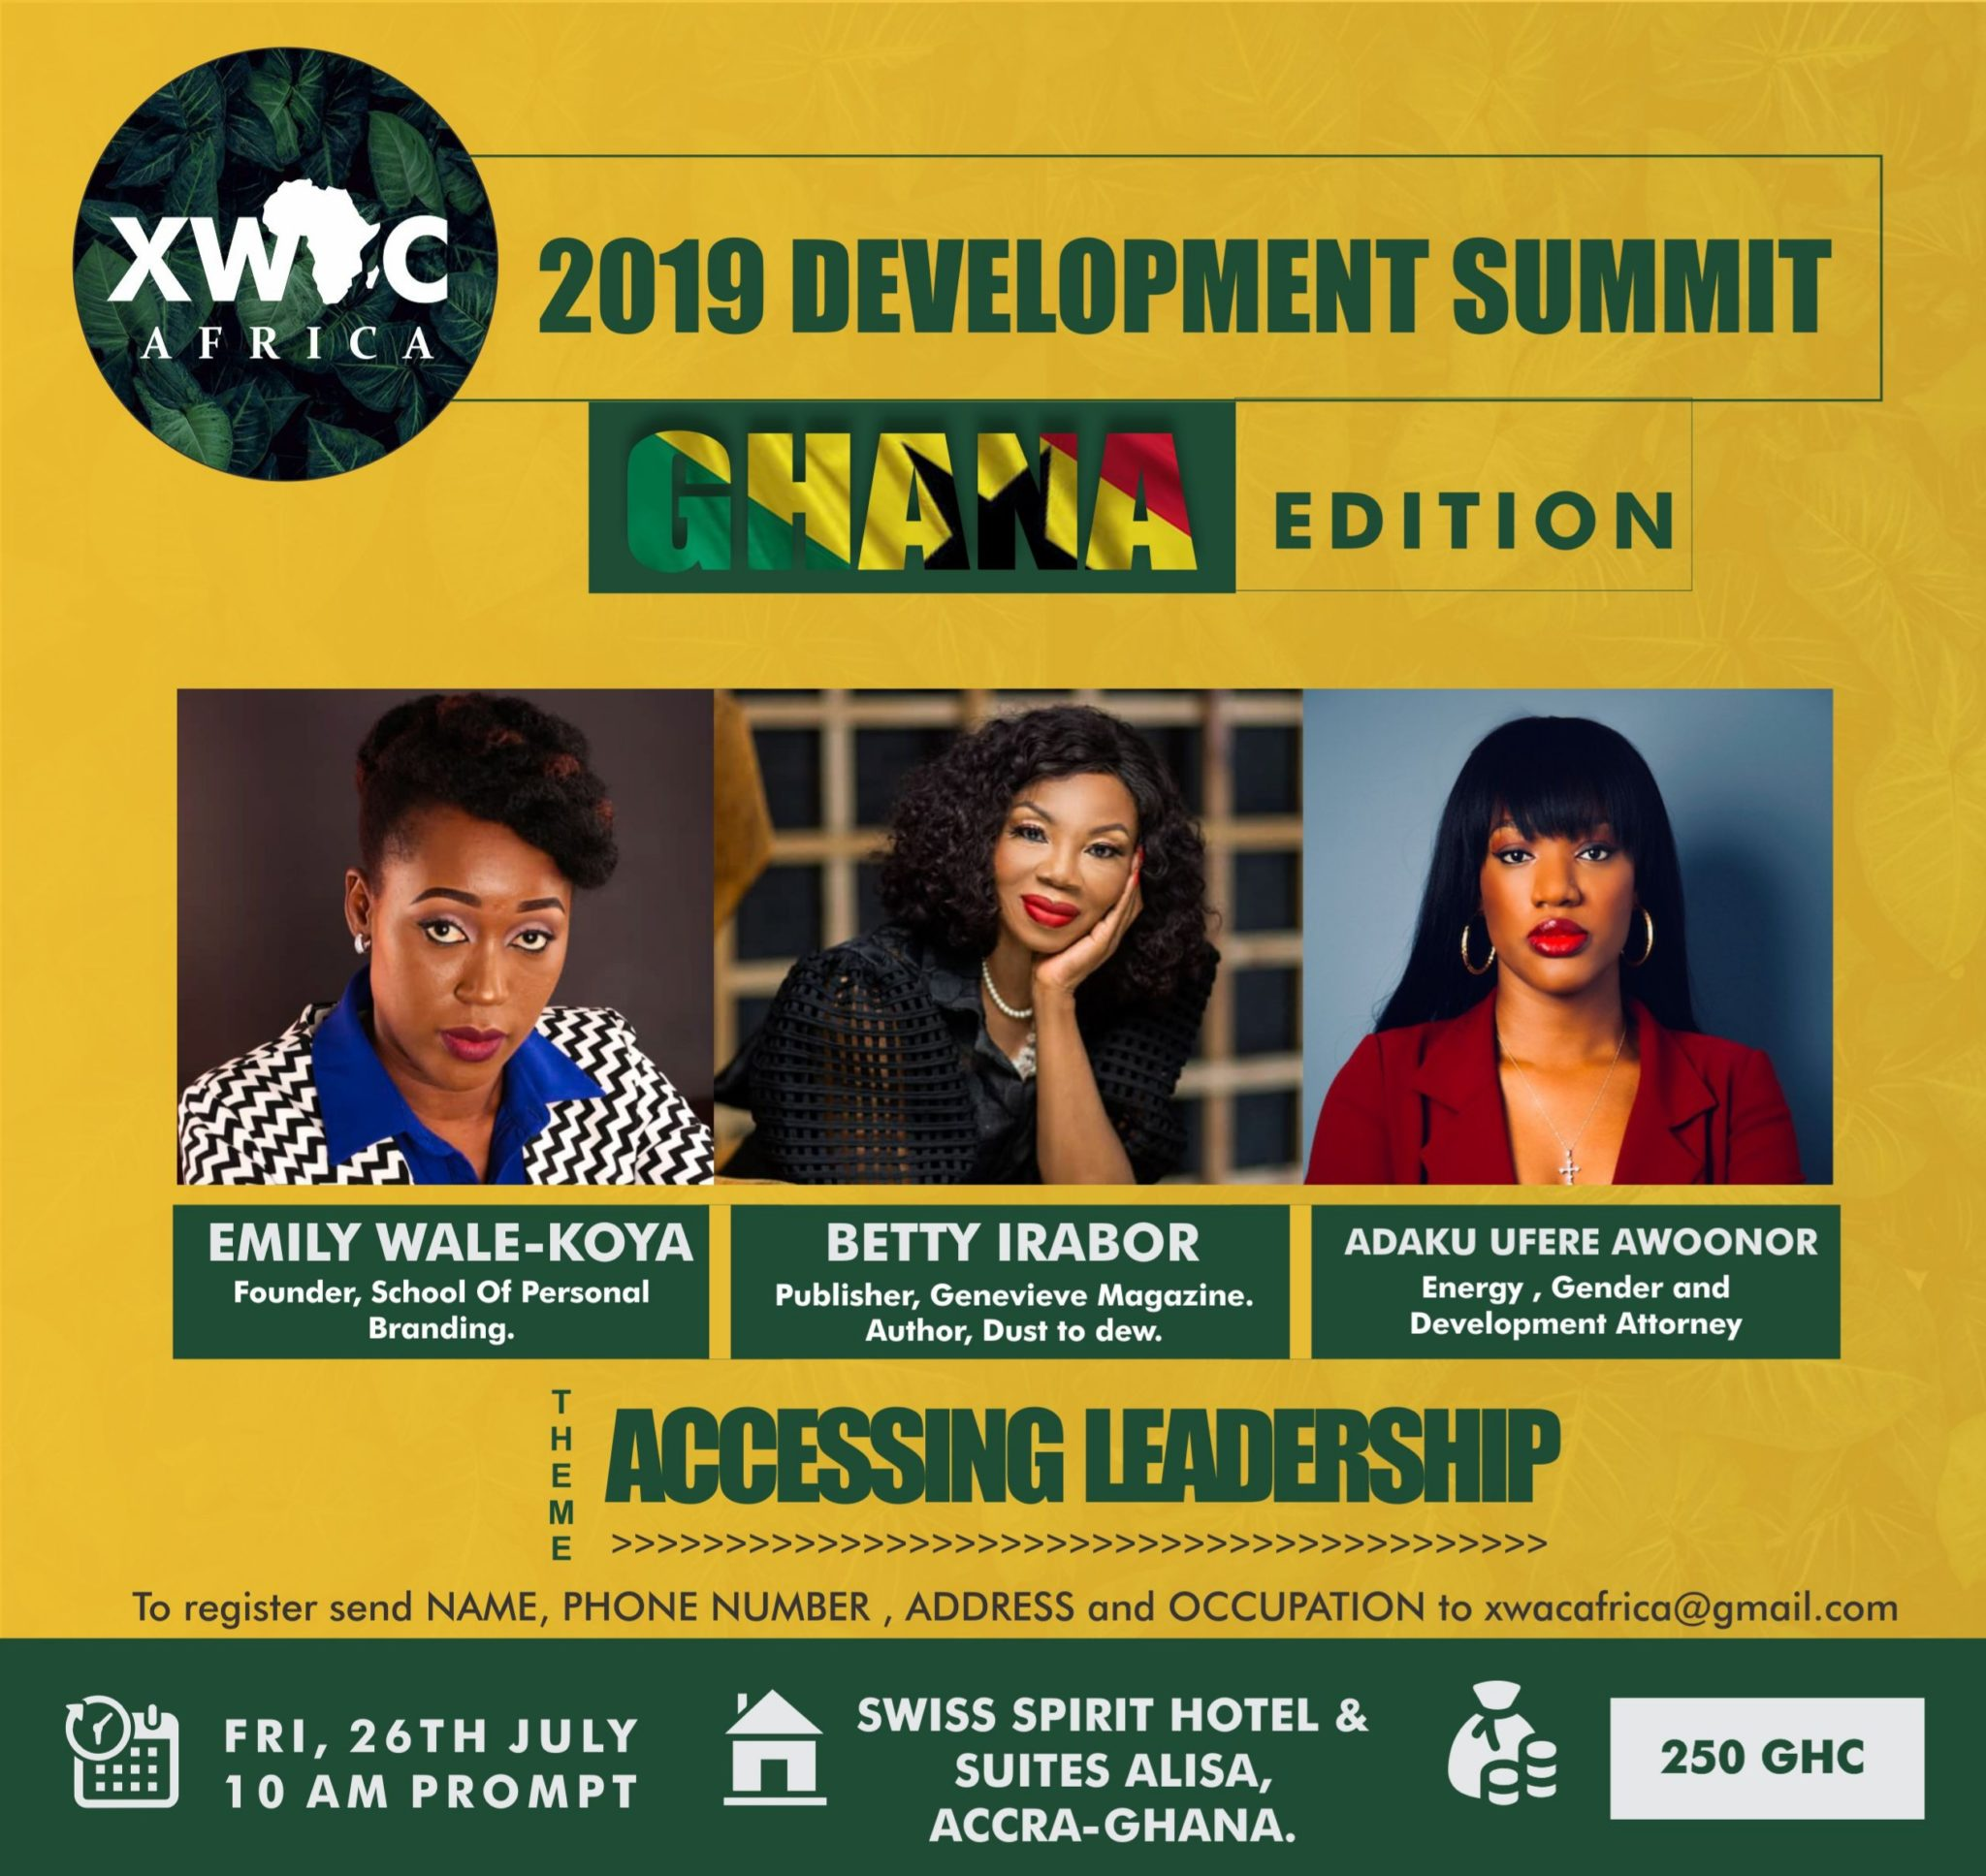 Betty Irabor, Adaku Ufere Awoonor And Emily Wale Koya set to speak at the XWAC Africa 2019 Development Summit Ghana Edition